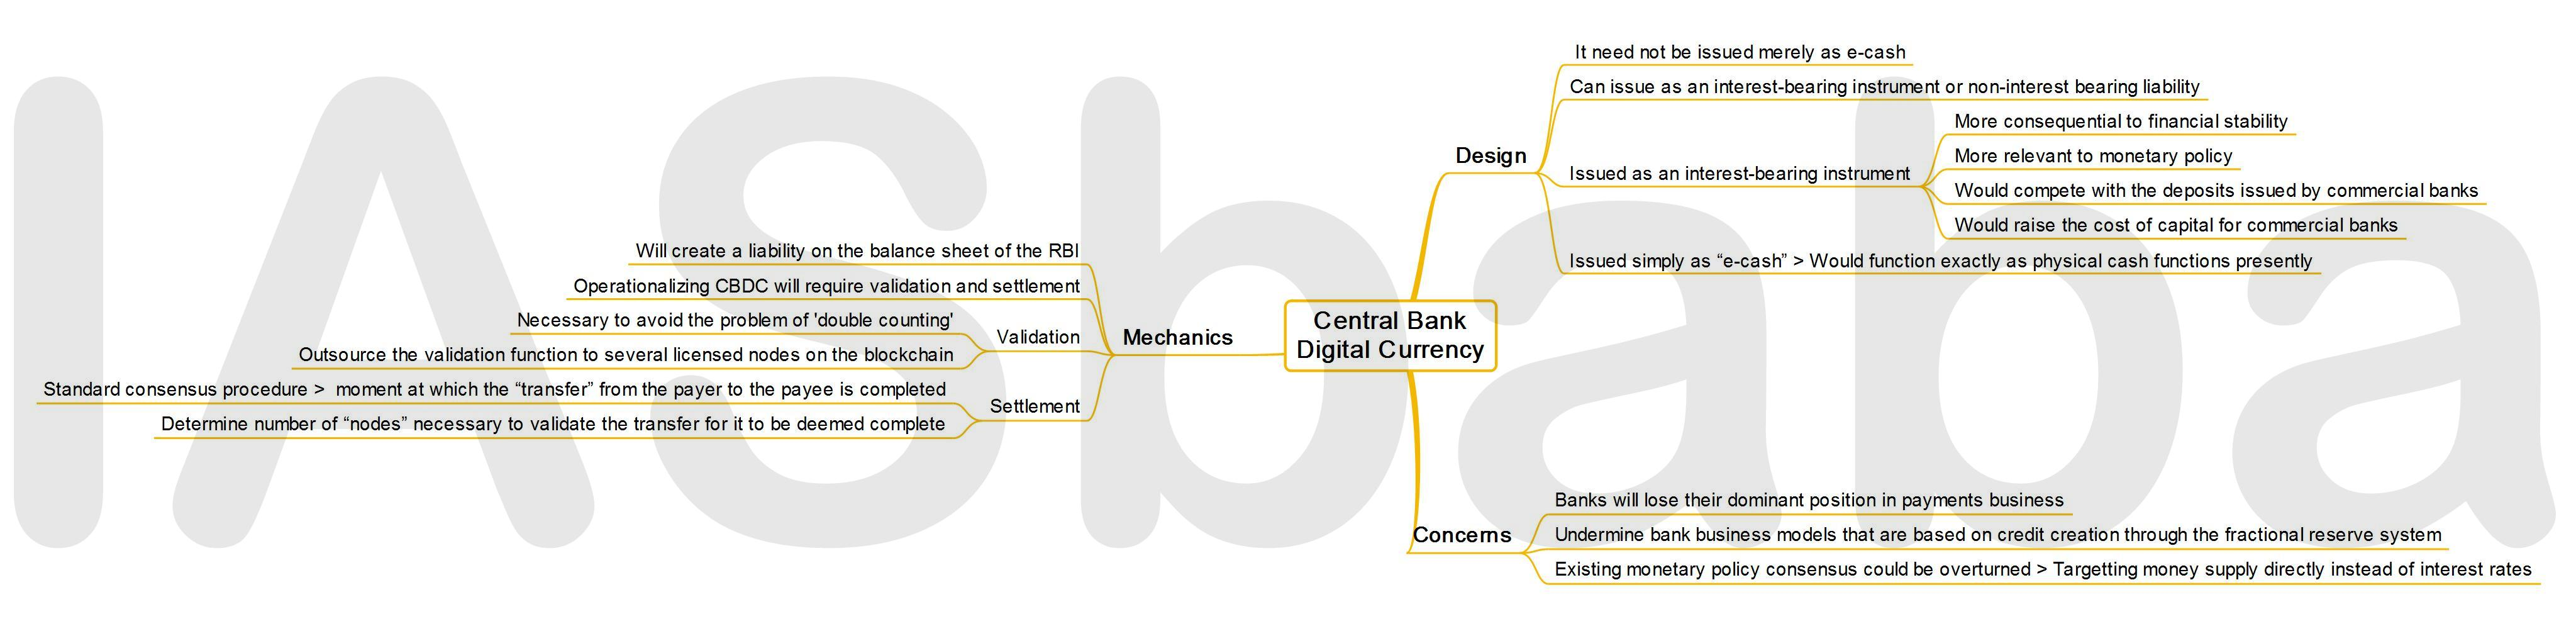 IASbaba's MINDMAP : Issue – Central Bank Digital Currency (CBDC)